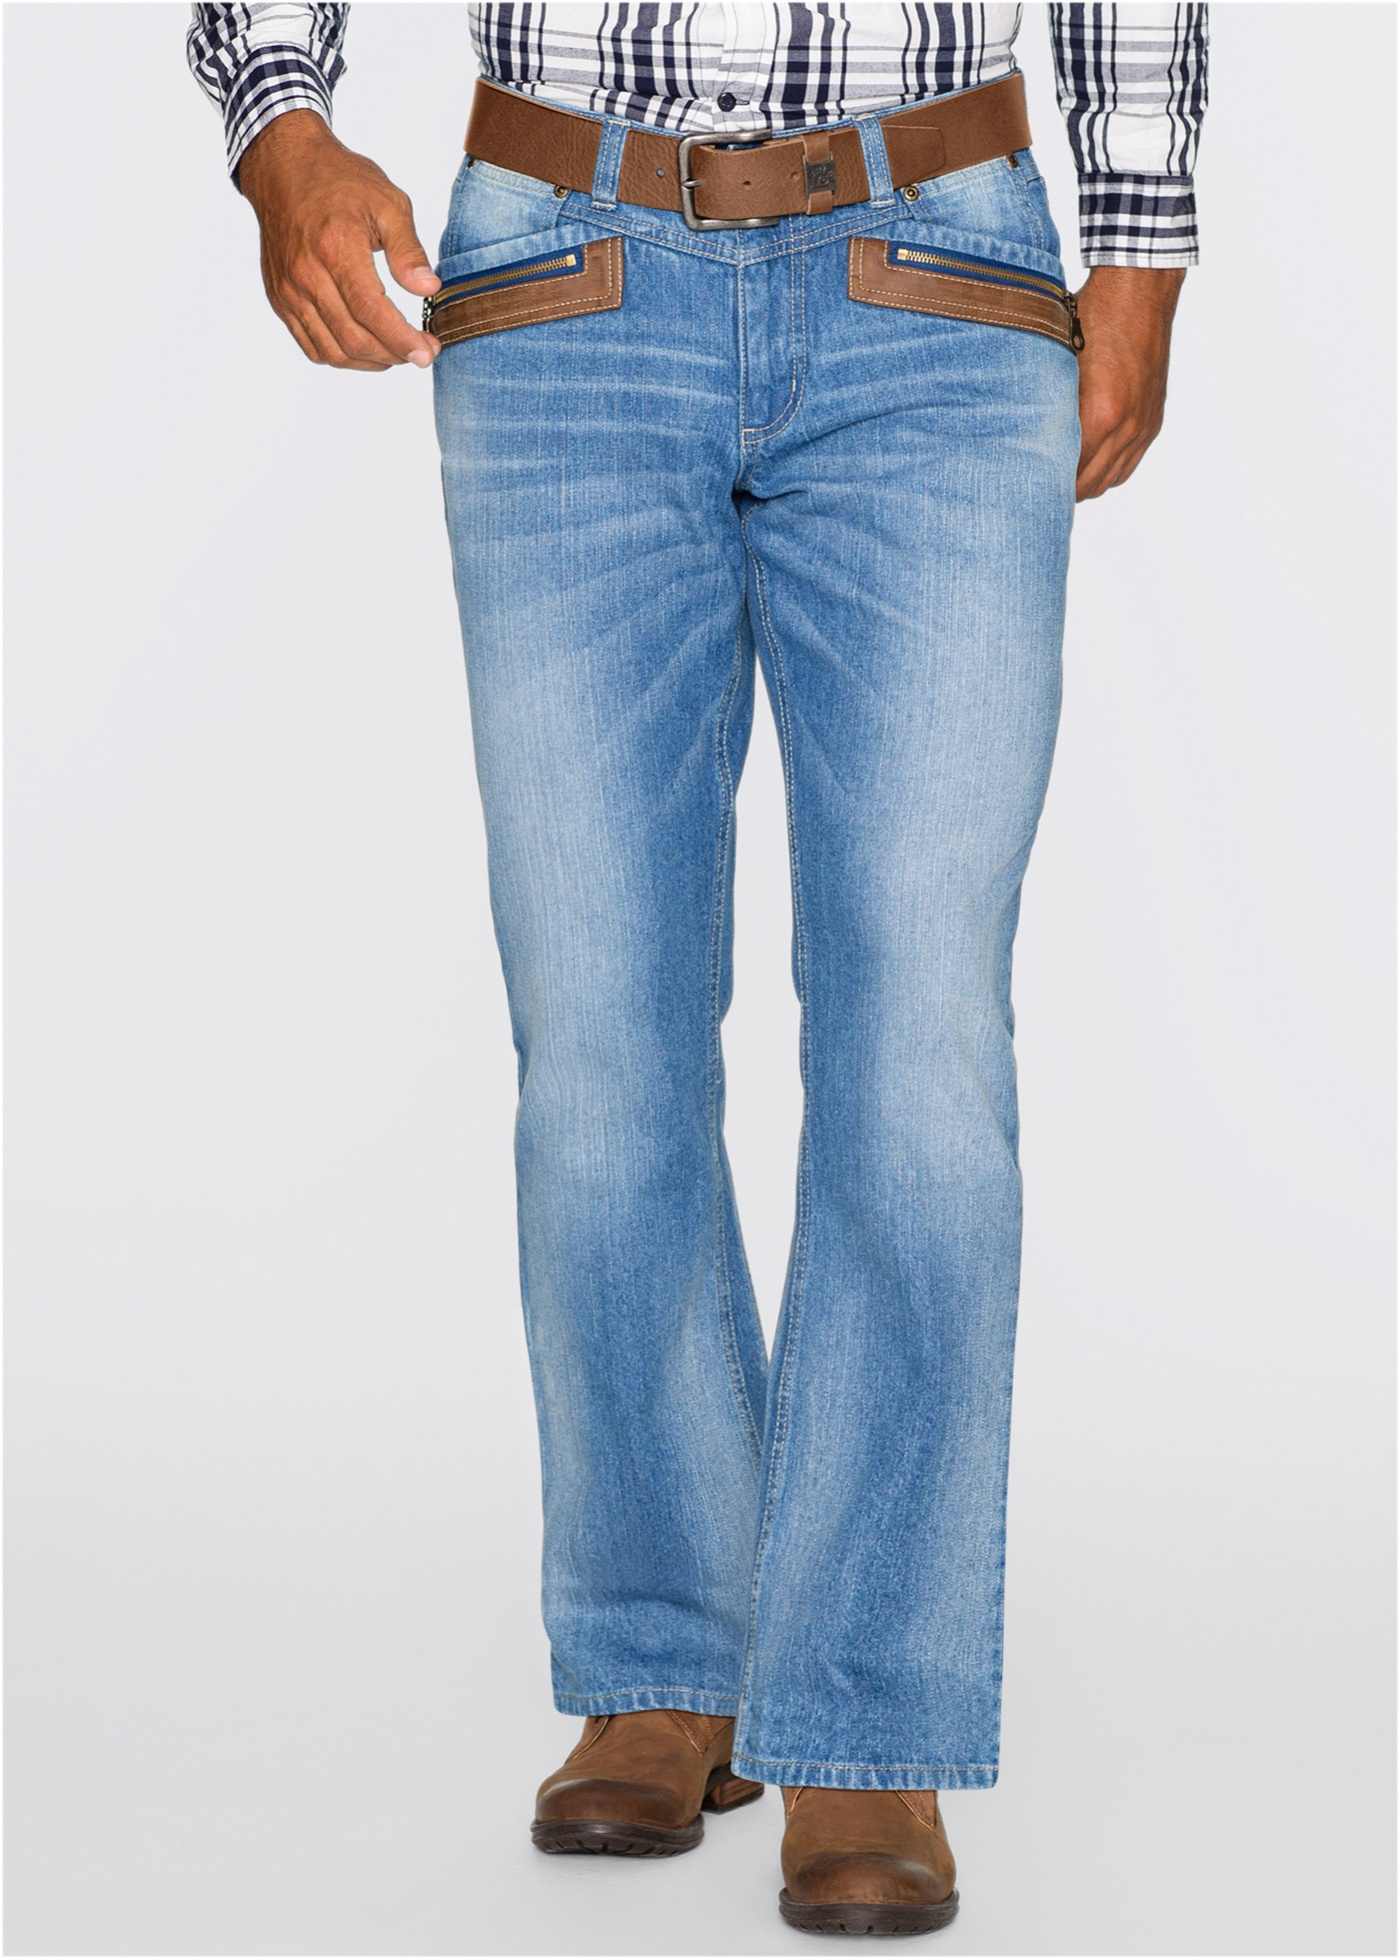 Jeans regular fit bootcut, John Baner JEANSWEAR, mellanblå used